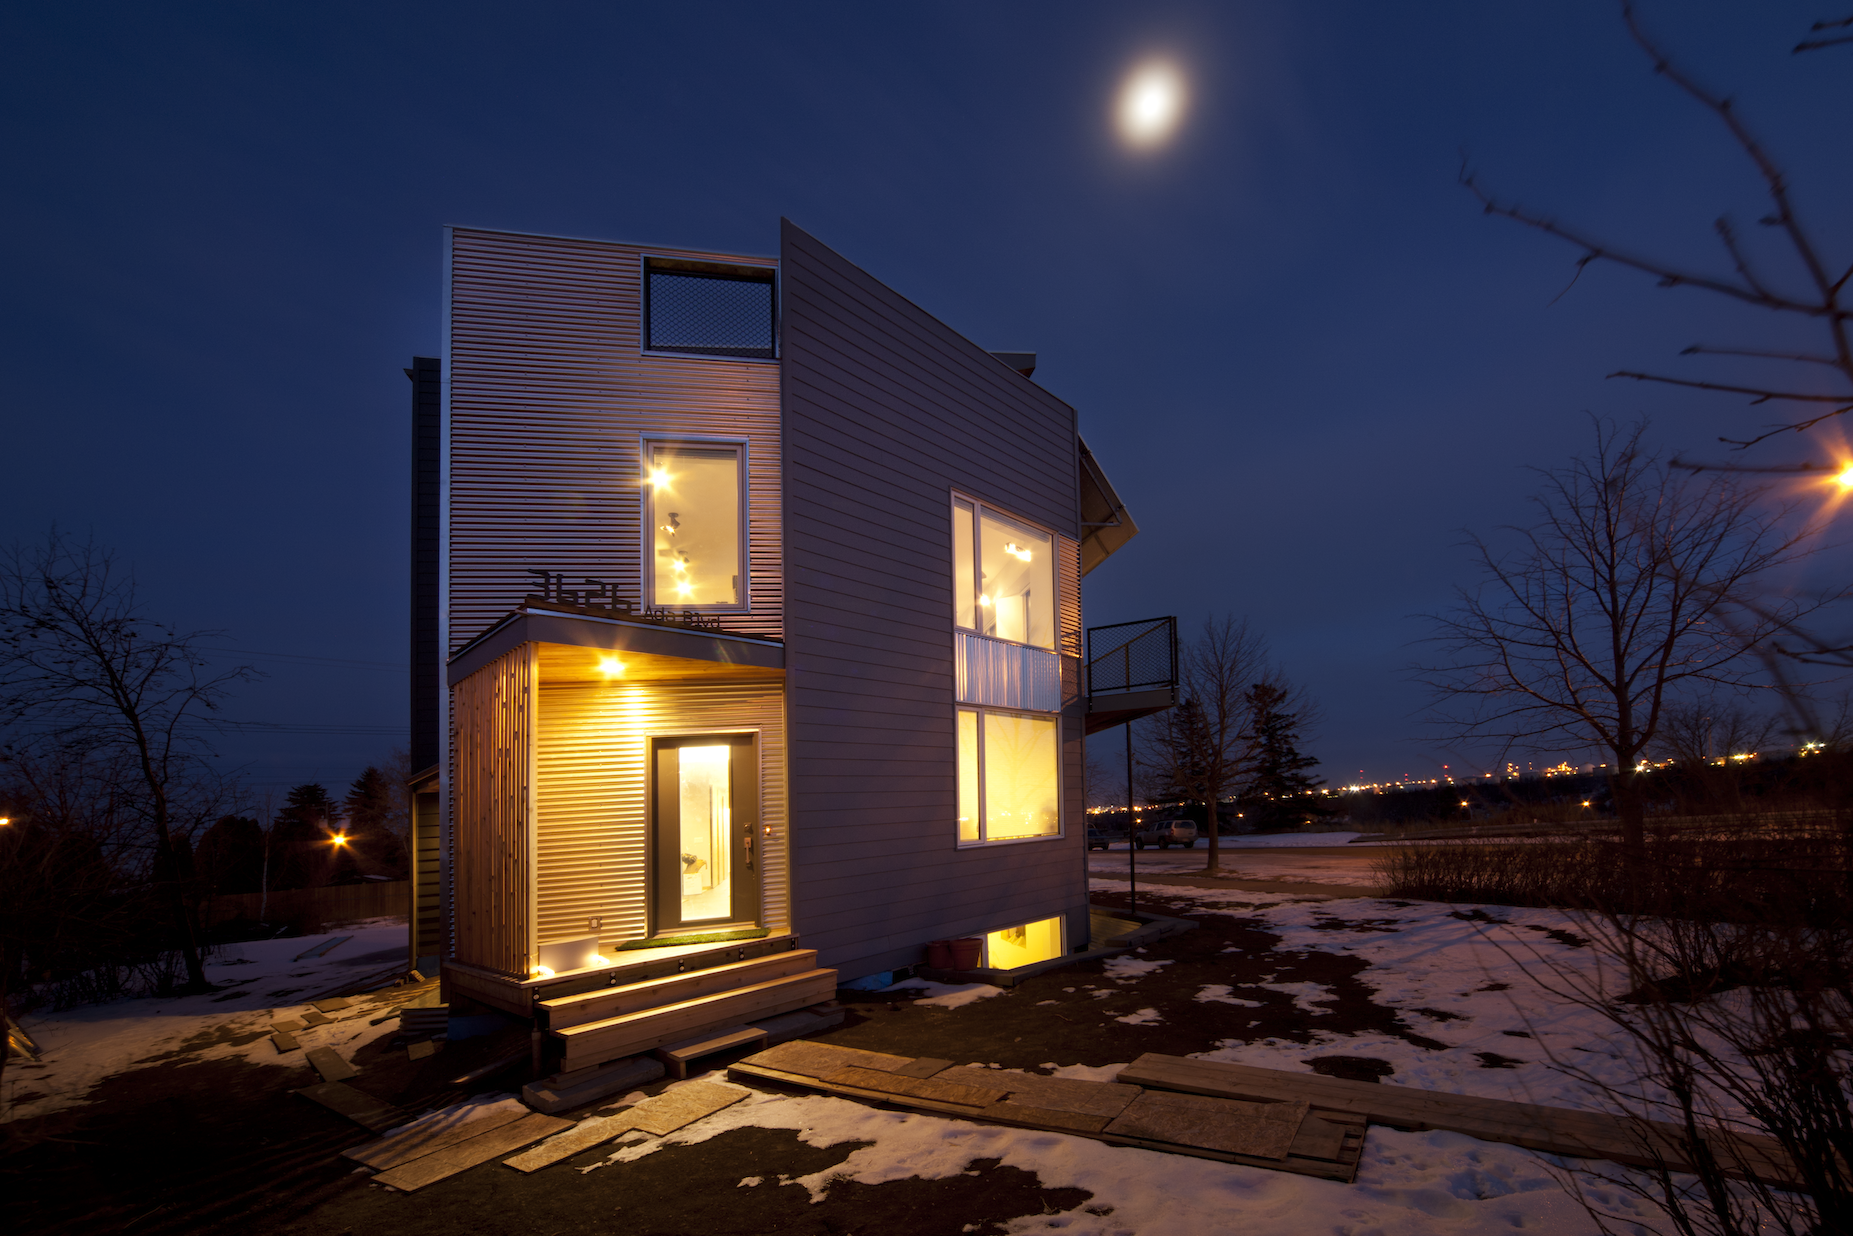 Beverly Heights House, Edmonton. Our own experiment on ourselves for net zero energy living!